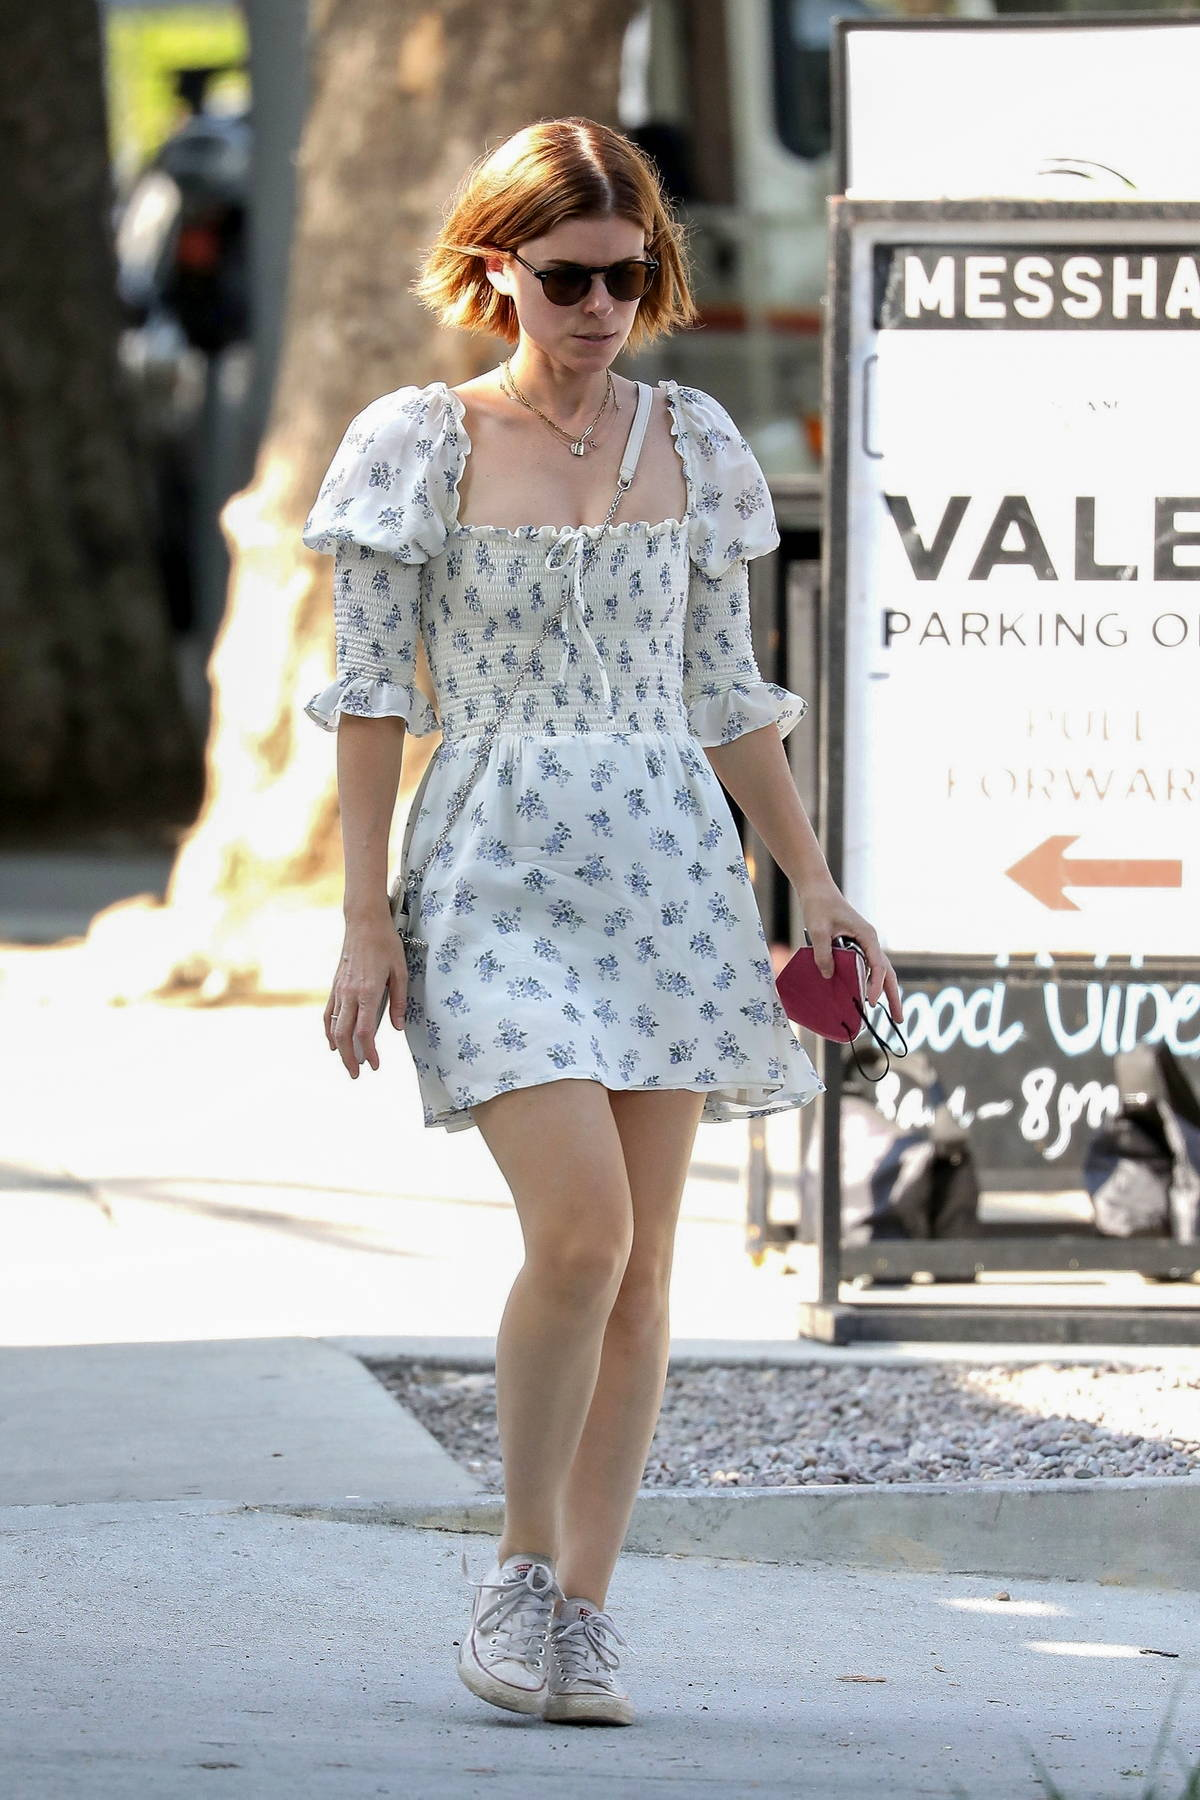 Kate Mara looks lovely in a floral white dress as she leaves after lunch at Little Dom's restaurant in Los Feliz, California